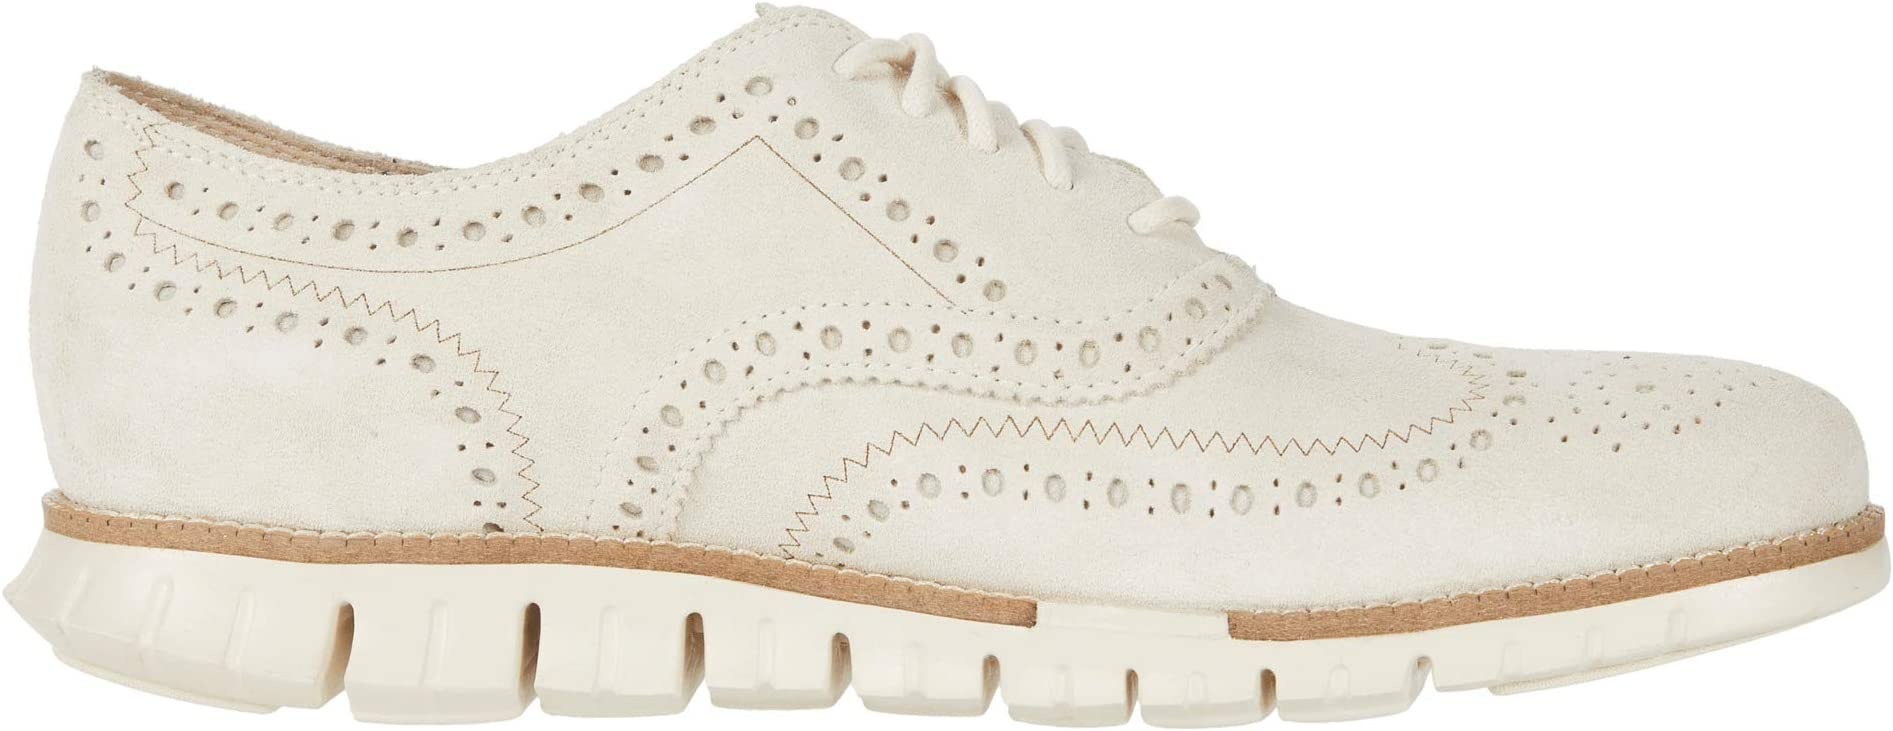 Cole Haan Zerogrand Wing Tip Oxford | Men's shoes | 2020 Newest